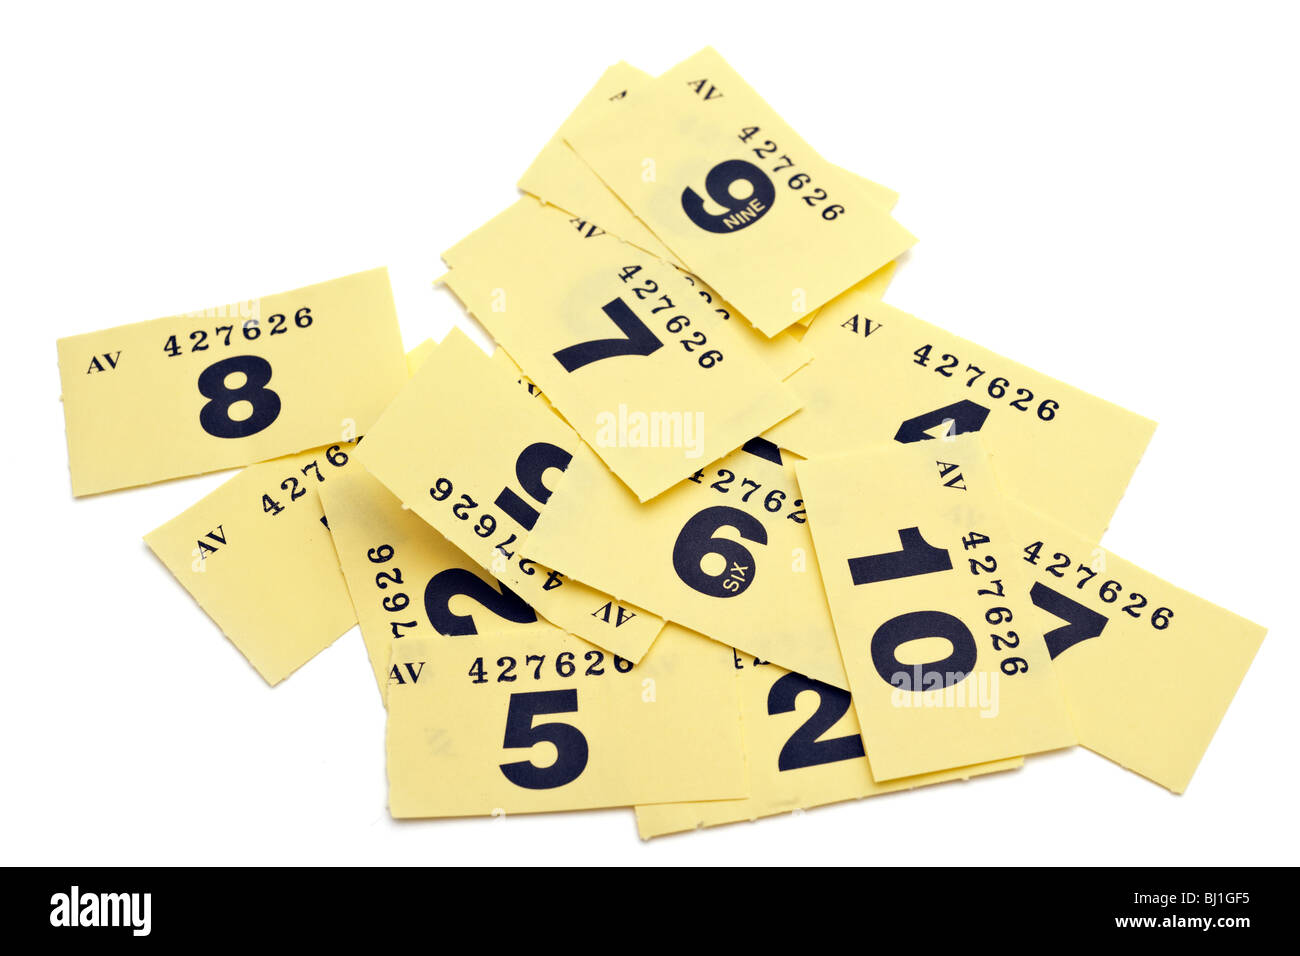 numbered tickets stock photos numbered tickets stock images alamy